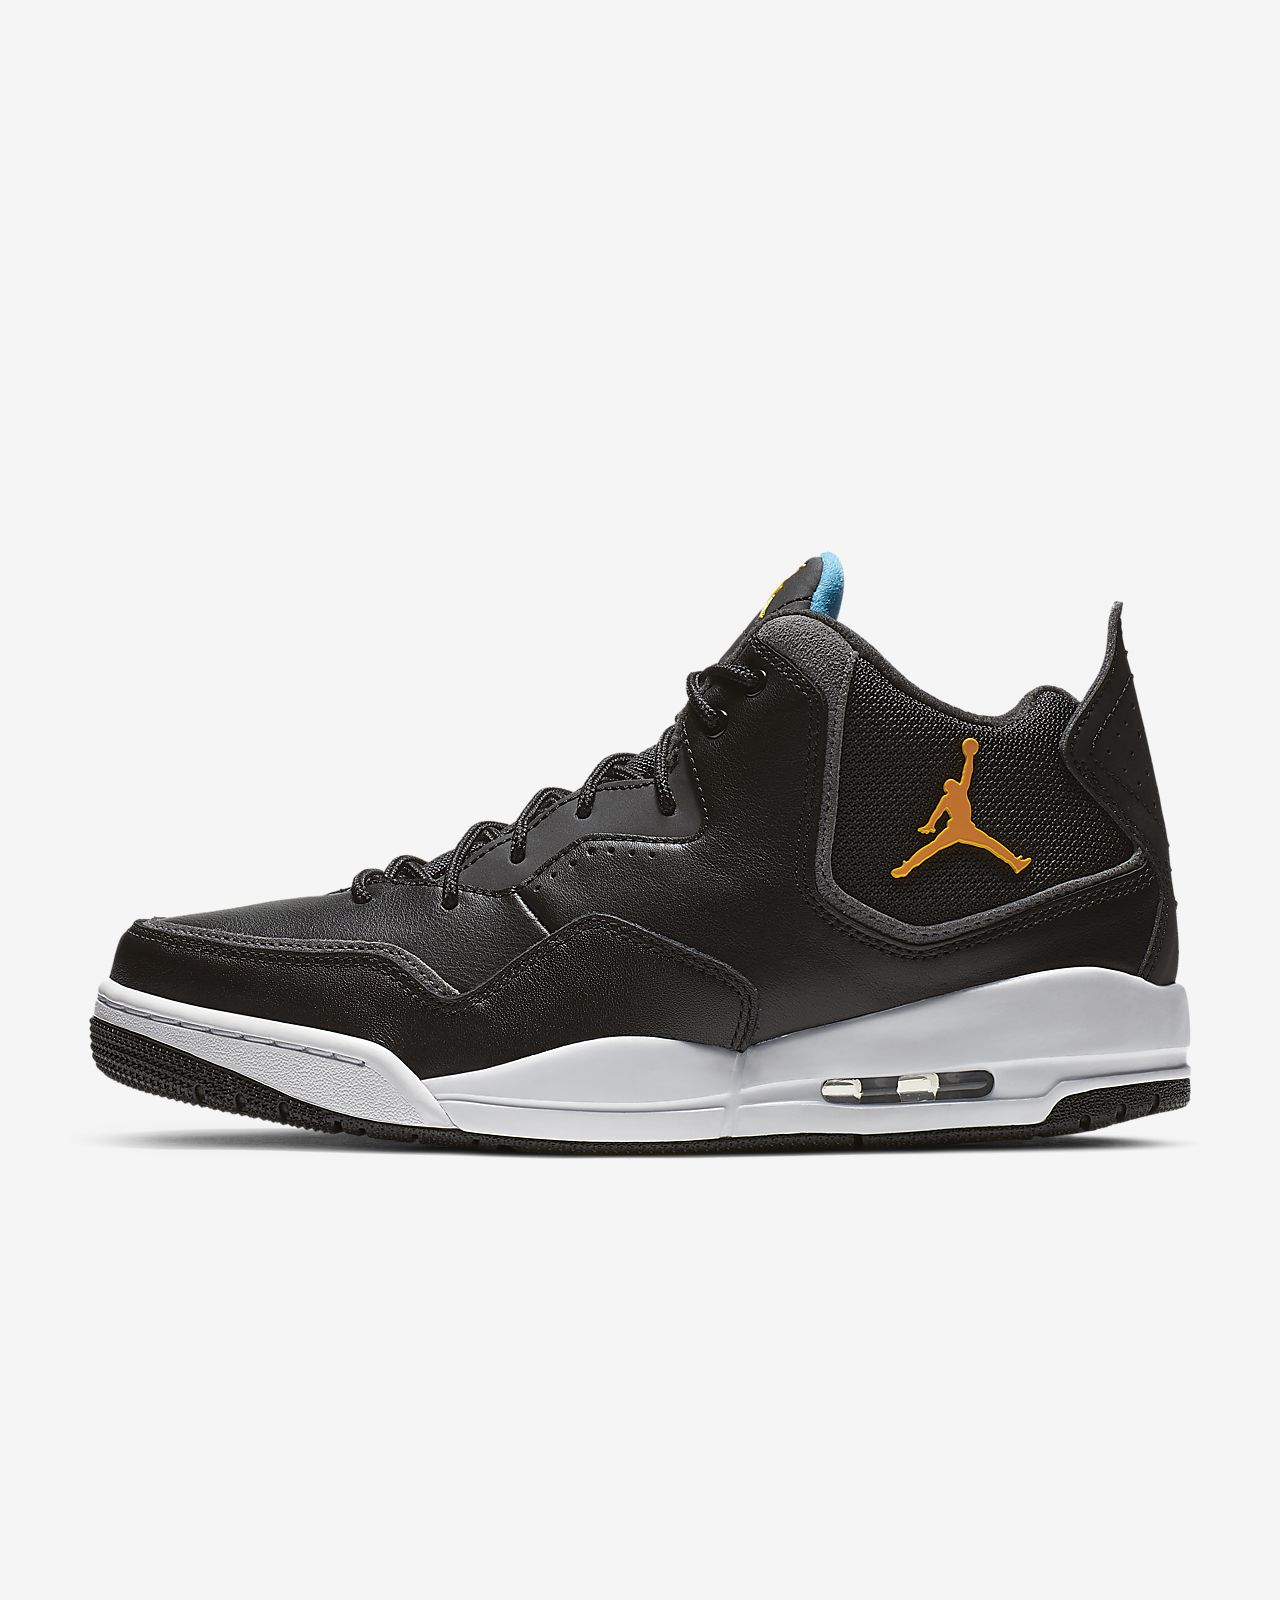 8219a0678 Jordan Courtside 23 Men s Shoe. Nike.com CA